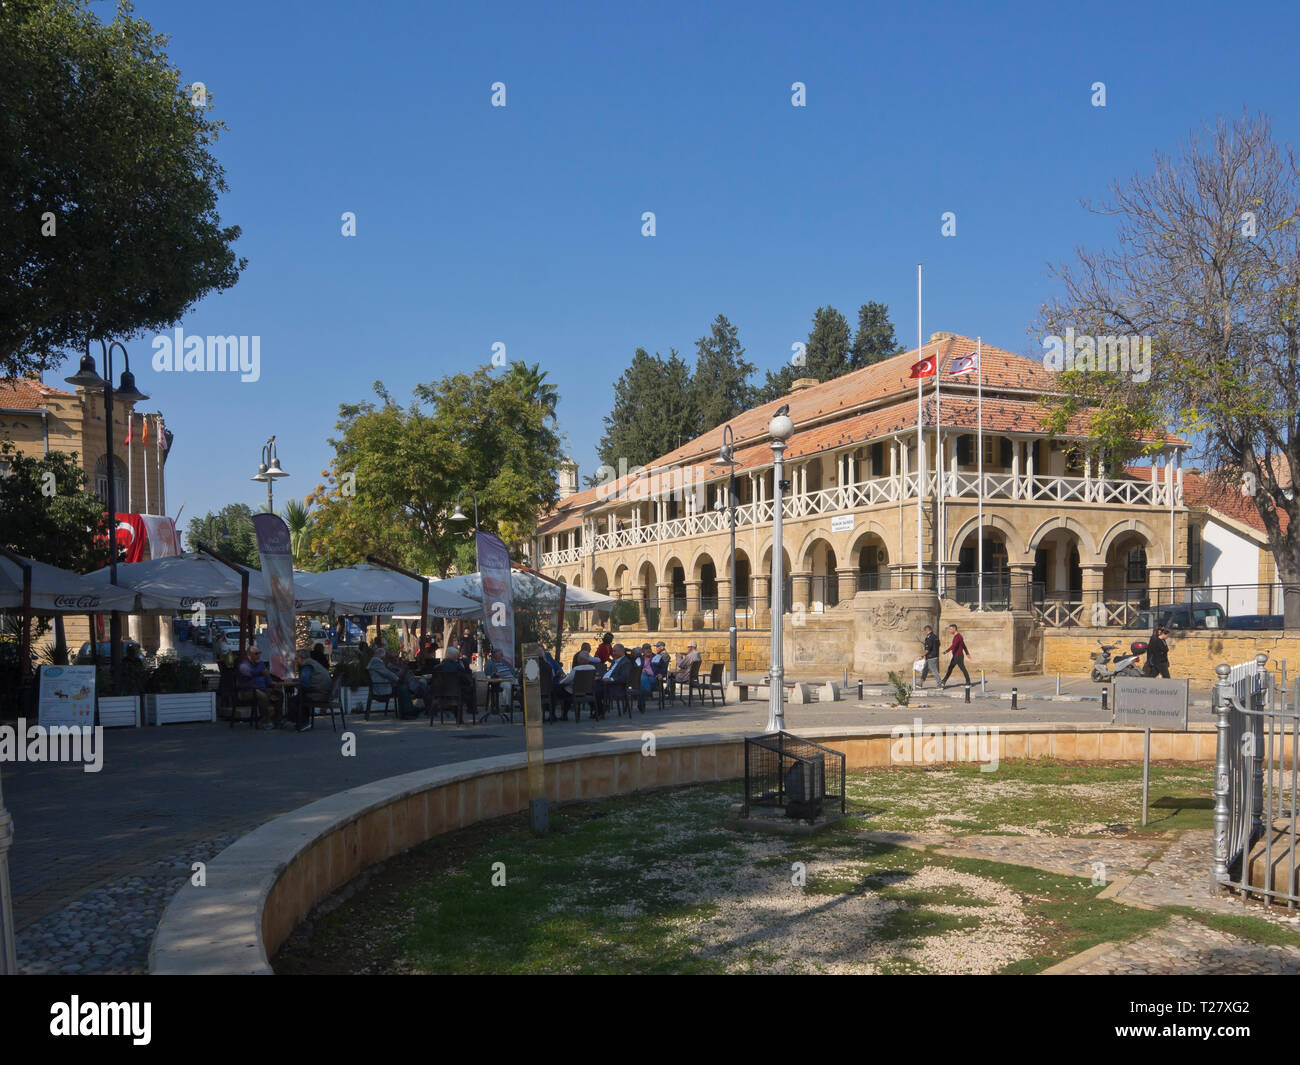 Atatürk Meydanı square with the building of the former British Colonial Law Courts in the Turkish part of Nicosia Cyprus - Stock Image